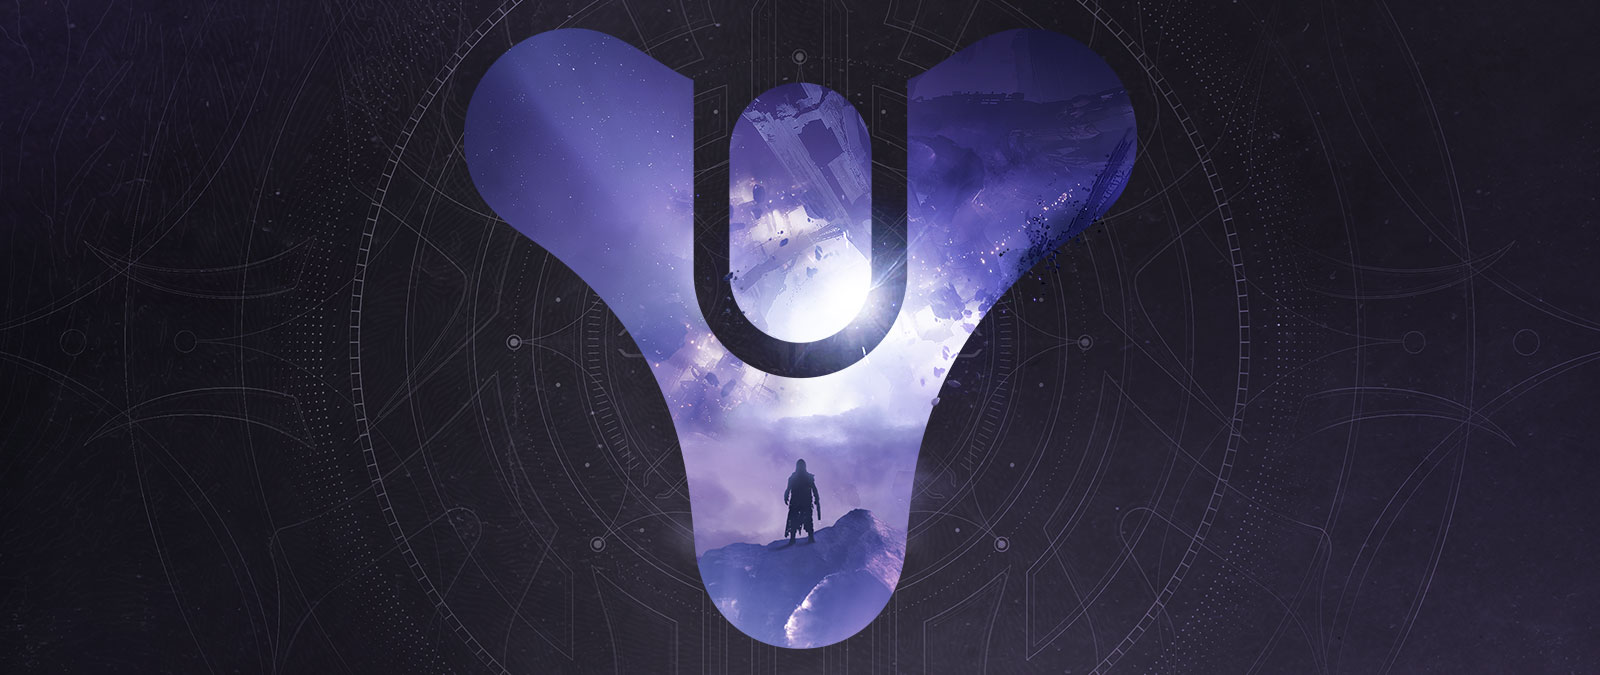 Destiny logo, A guardian stands on debris as a piece of the Reef falls apart